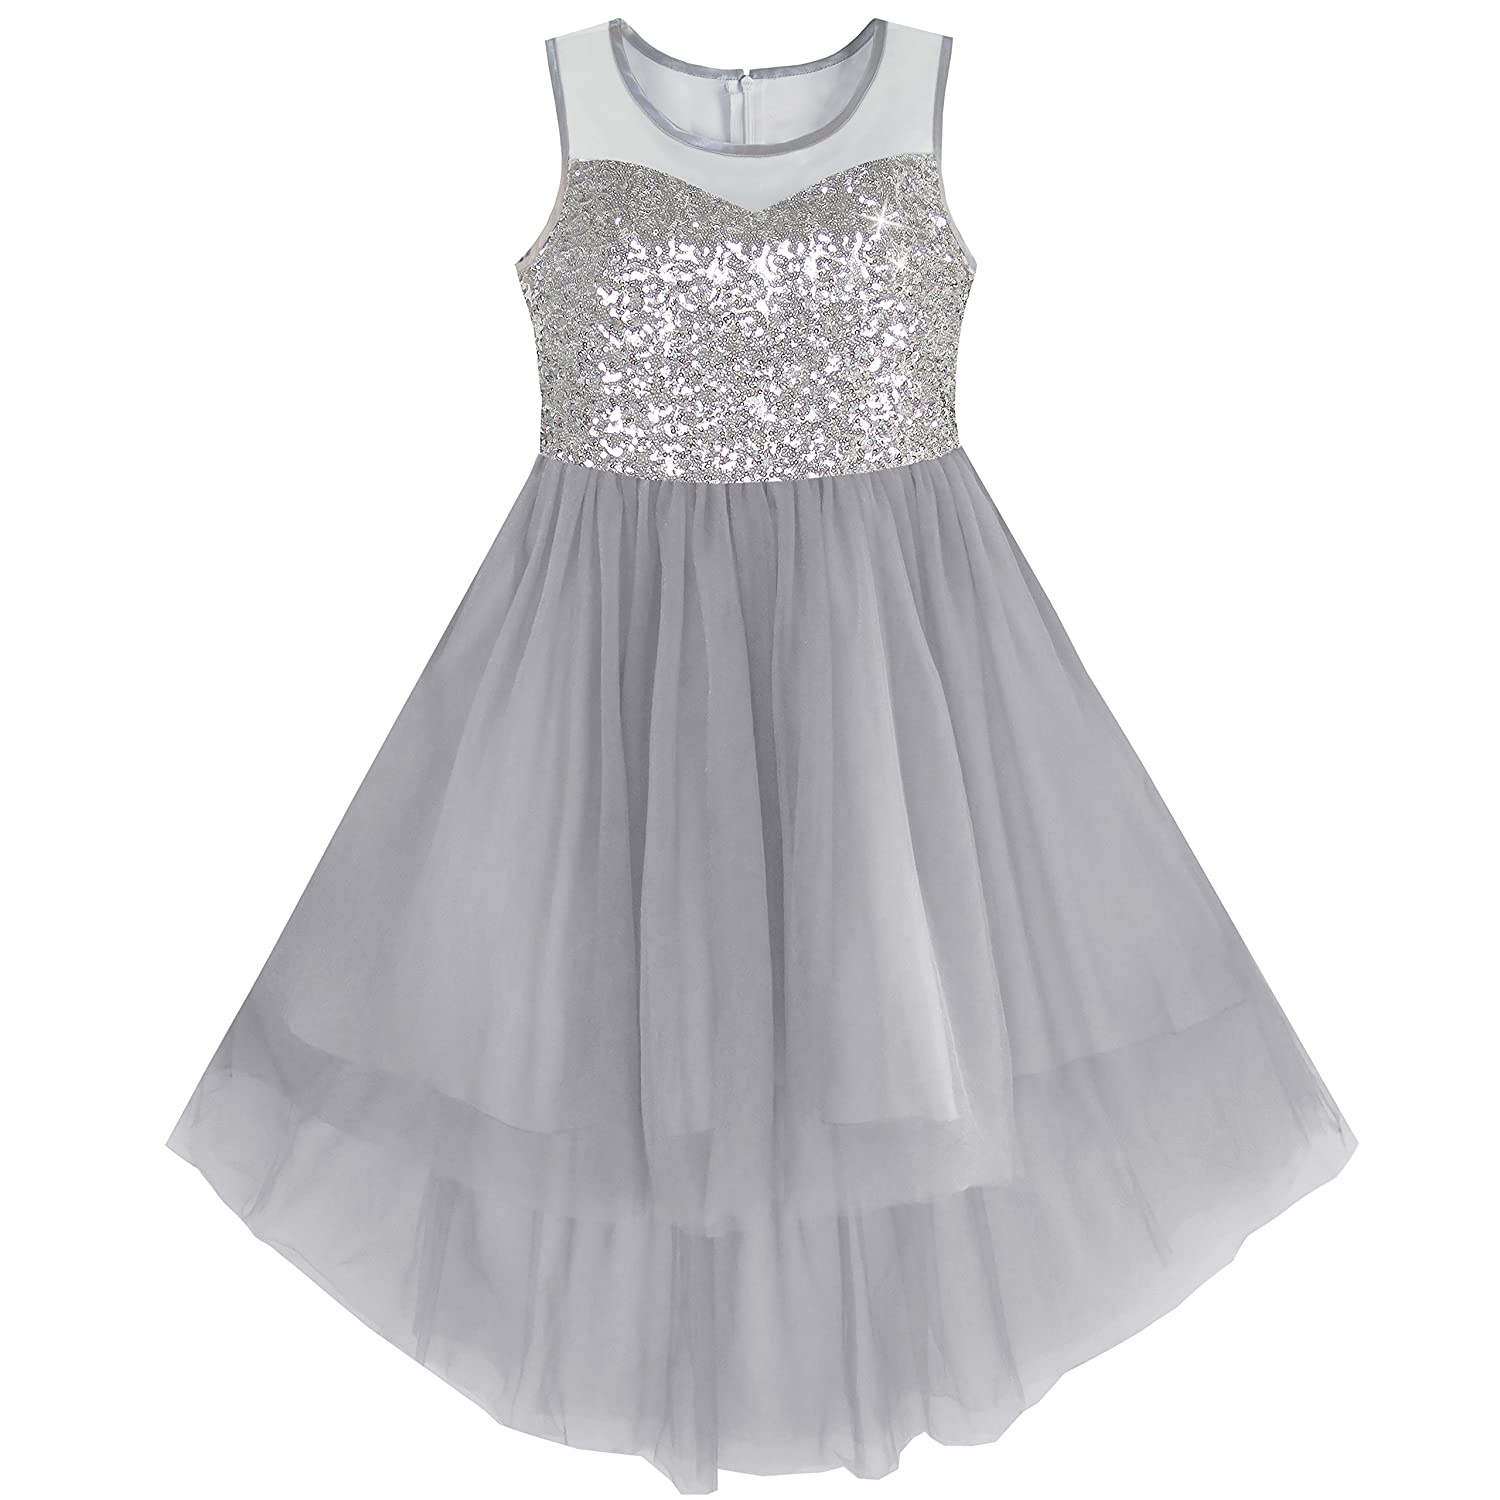 Sunny Fashion Girls Dress Sequin Mesh Party Wedding Princess Tulle, Vestito Bambina